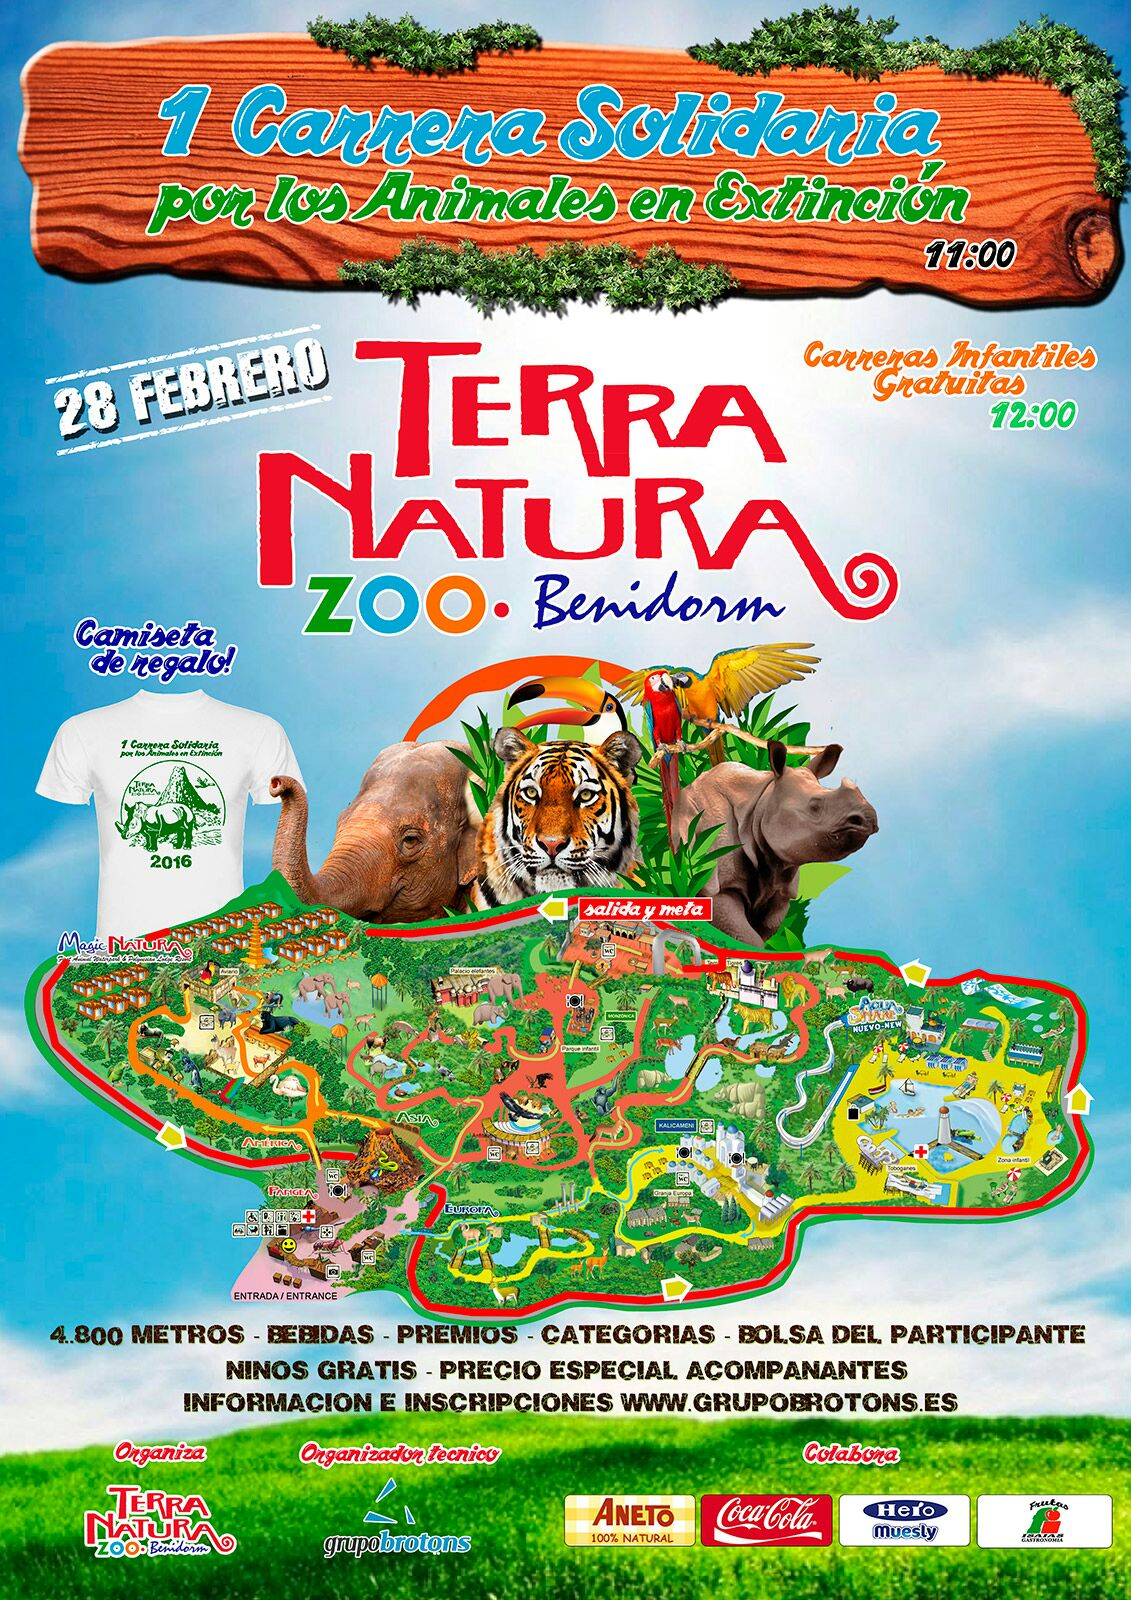 Cartel 1ª carrera solidaria Terra Natural Benidorm